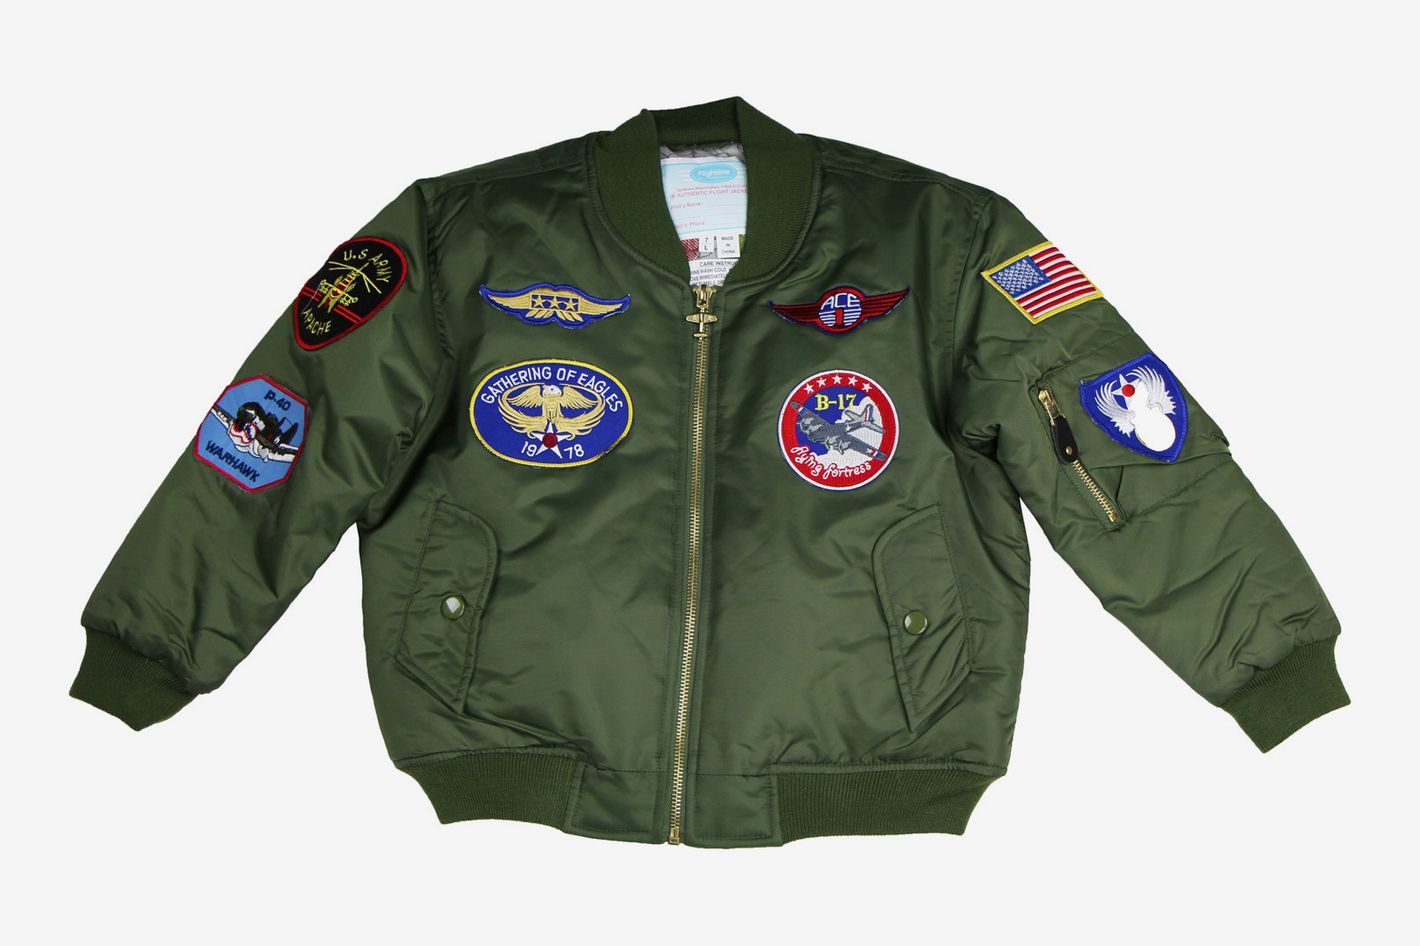 Youth MA-1 Flight Jacket with Patches